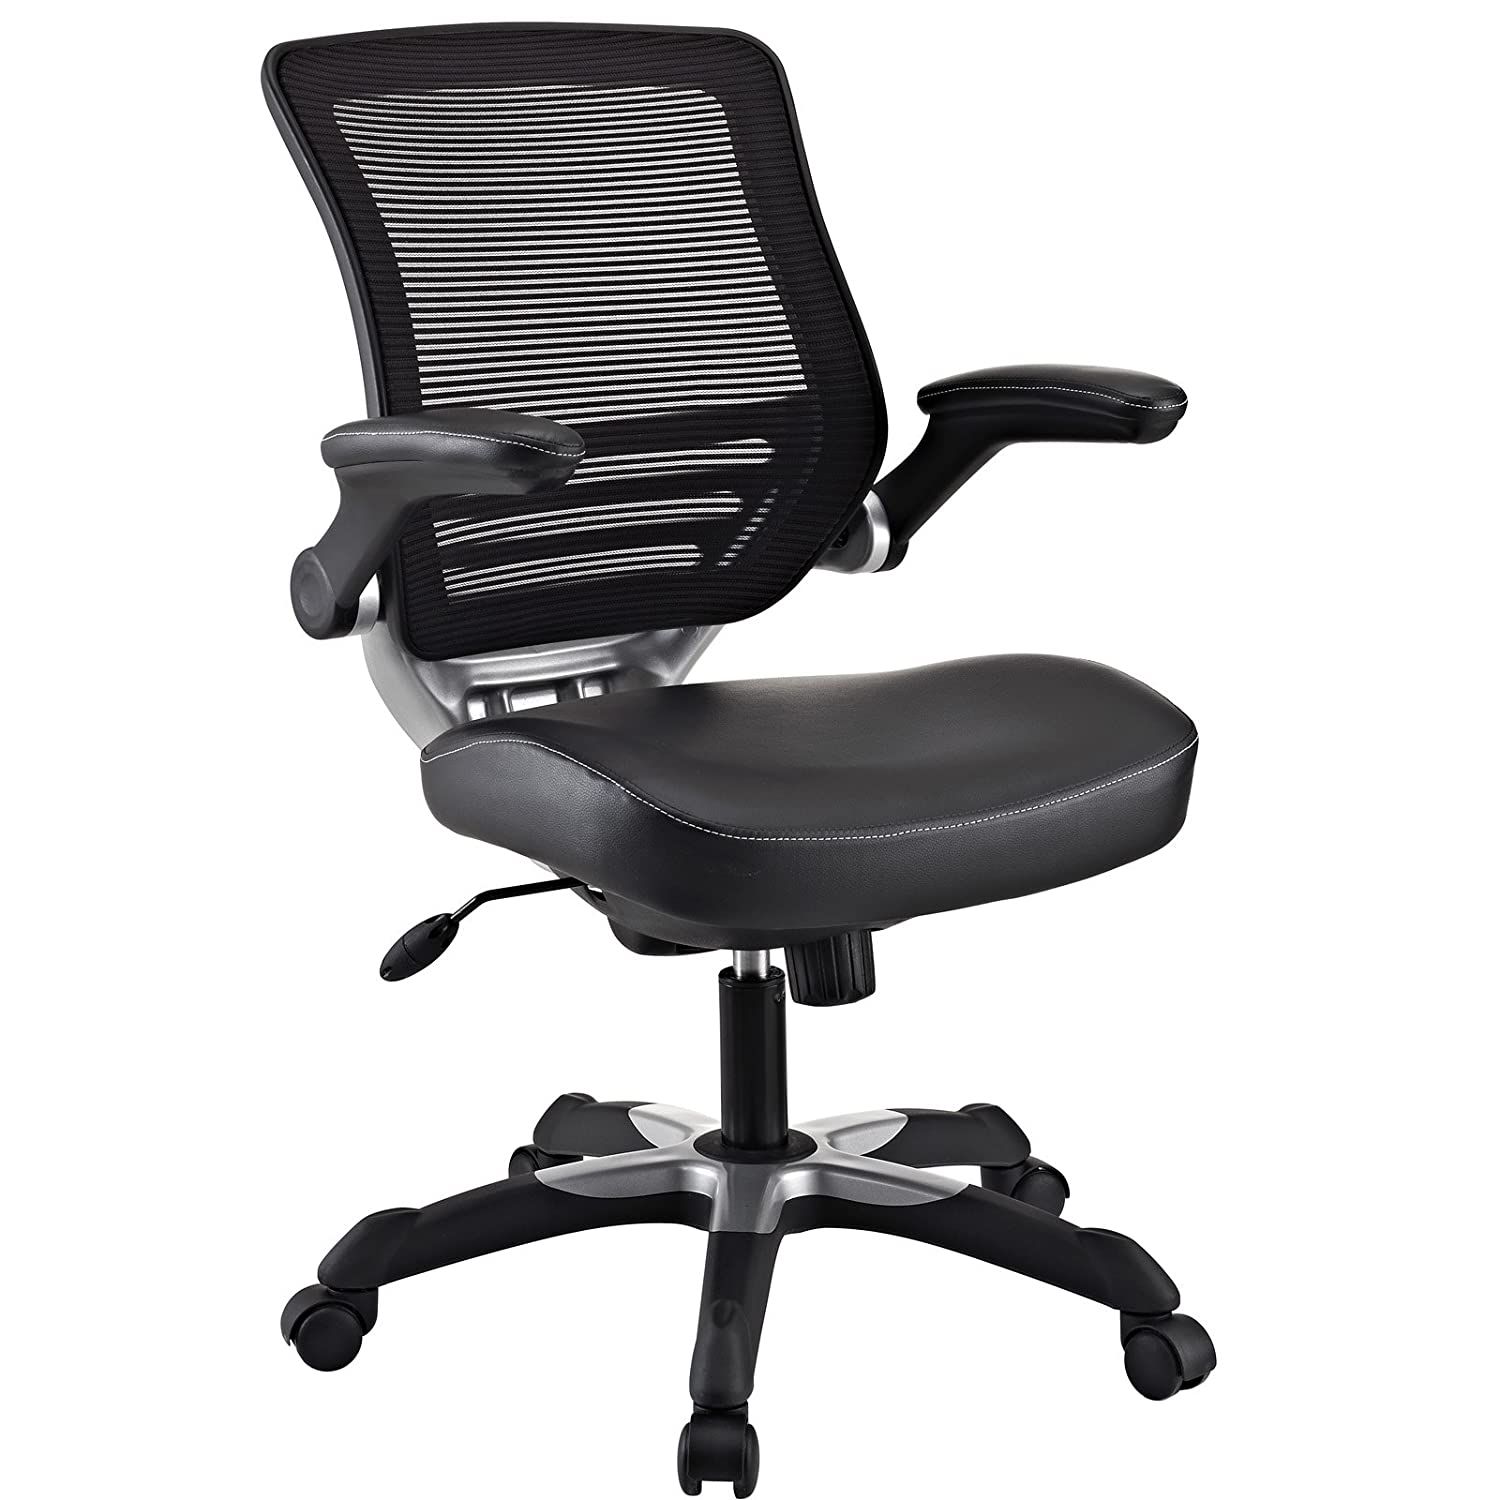 Comfortable Office Chairs Best Comfortable Office Chair In The Market 2015